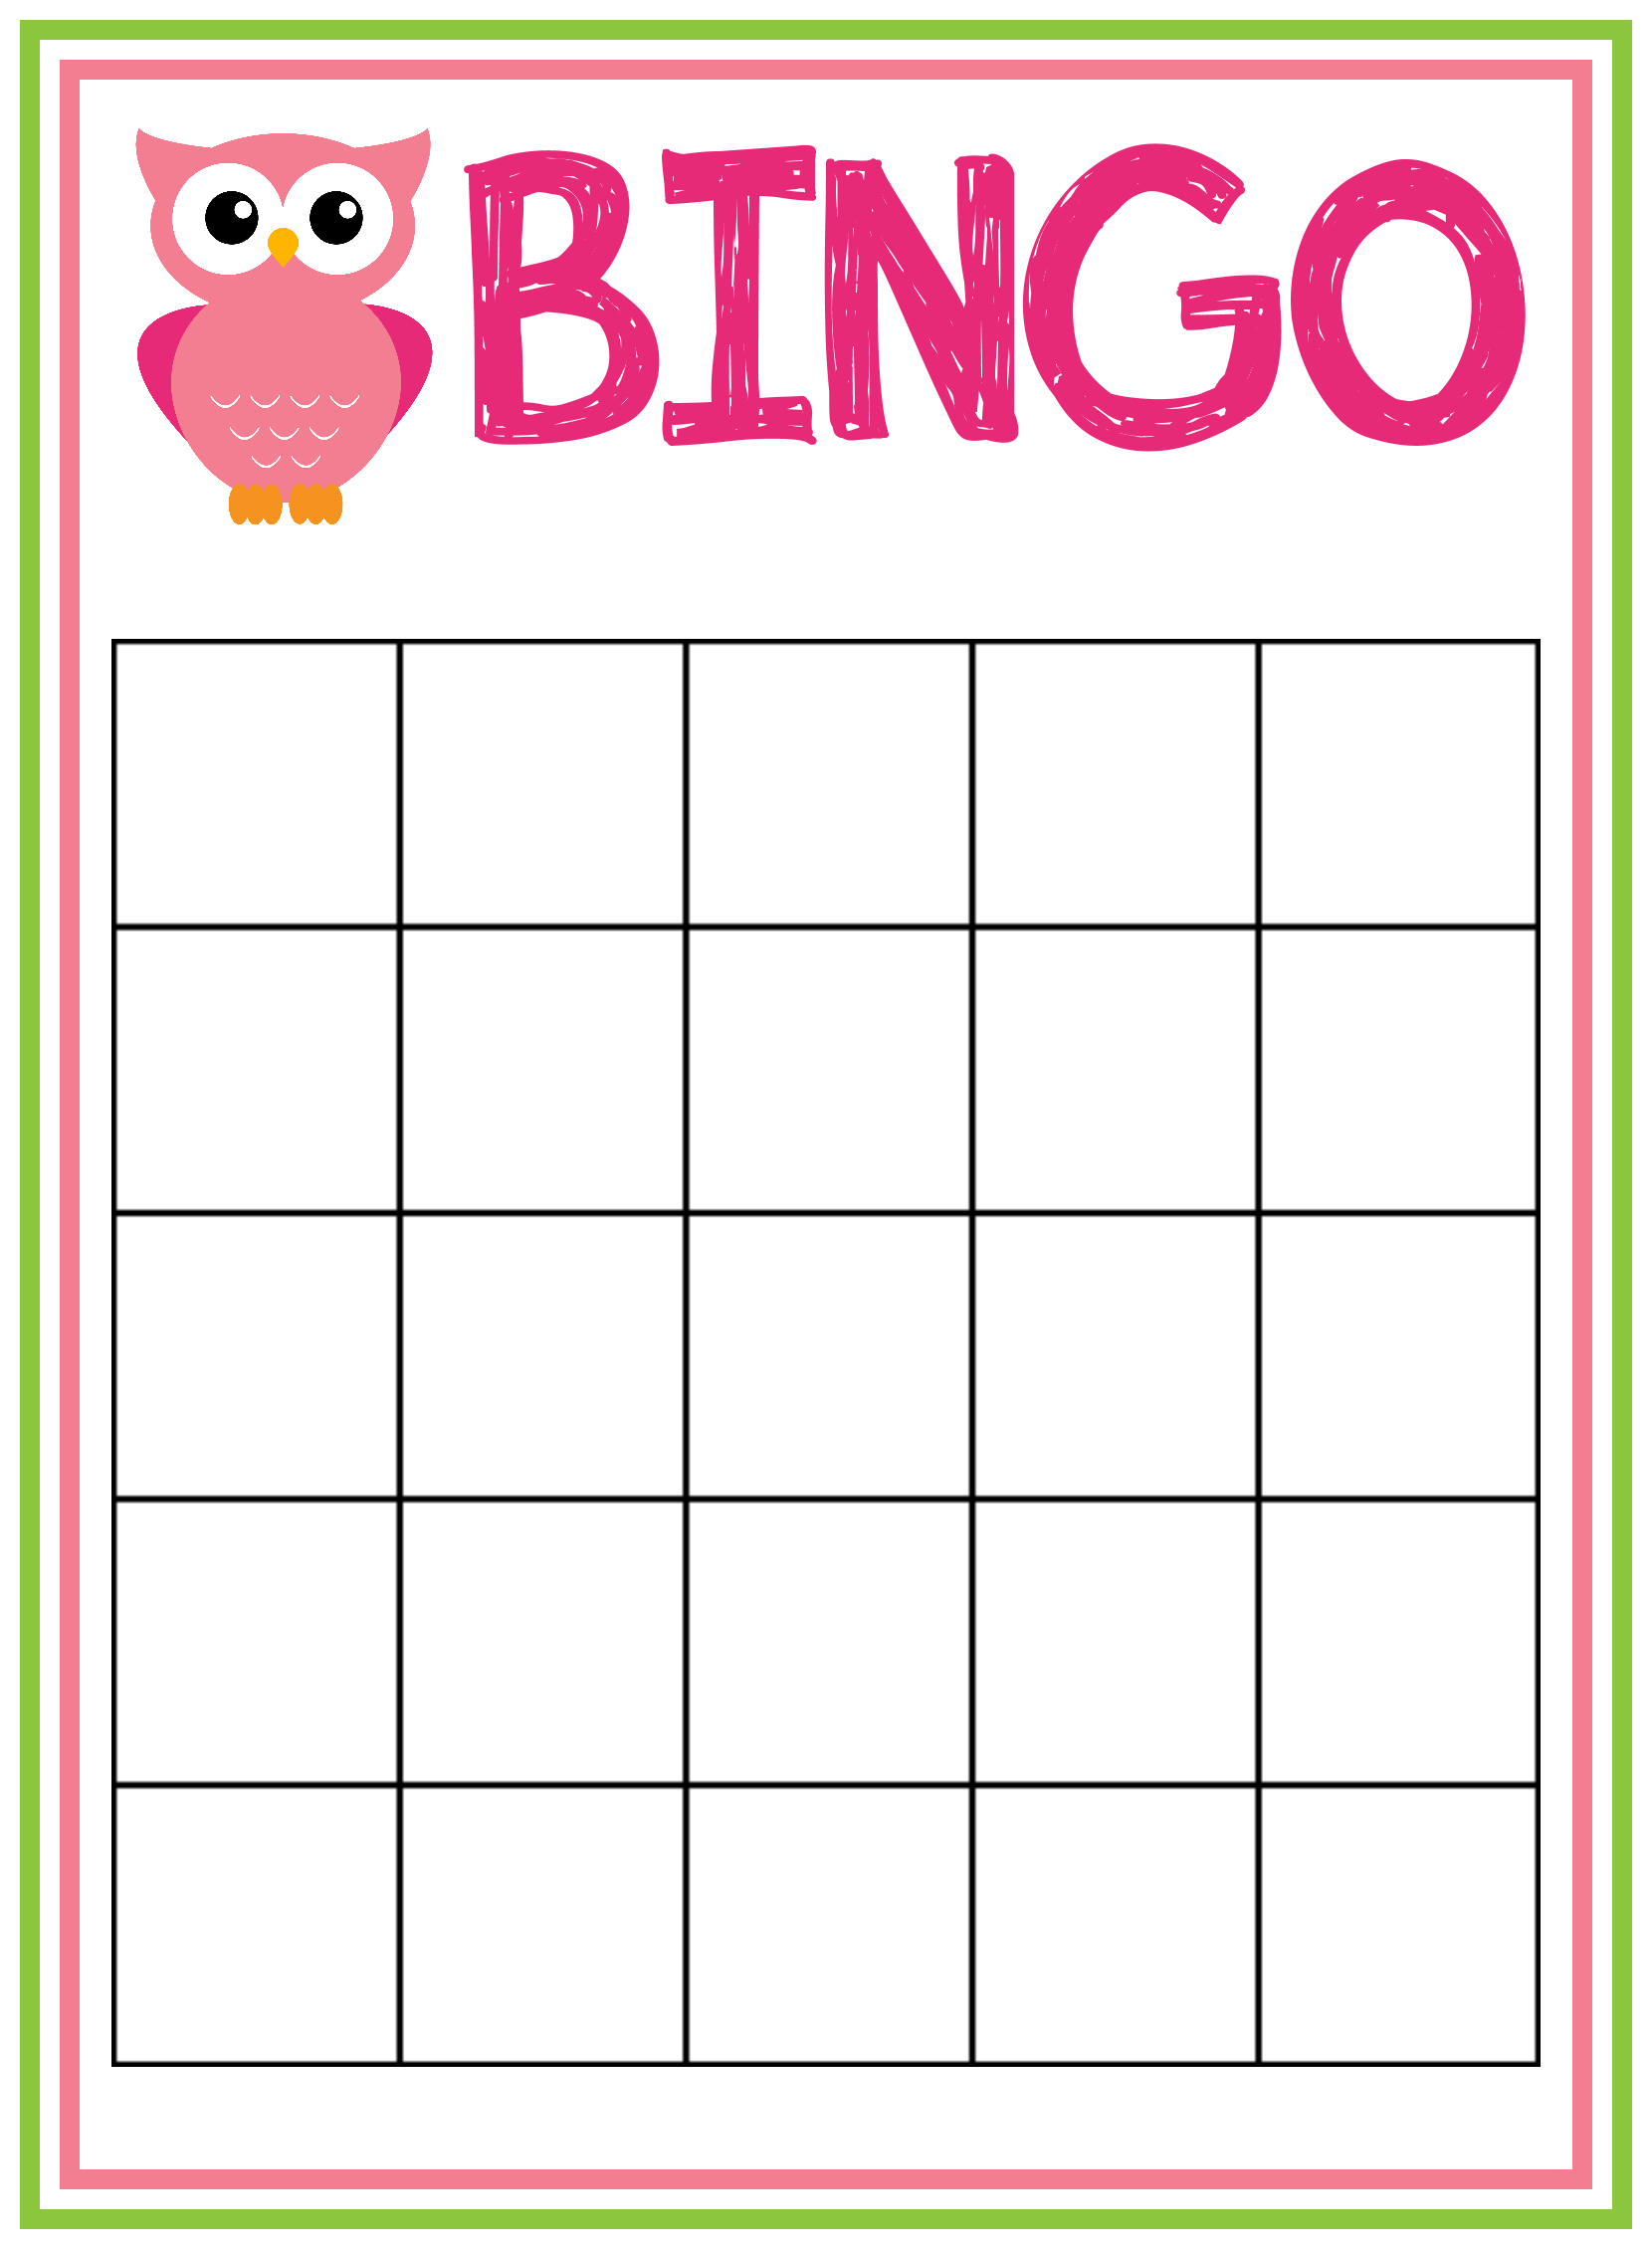 bingo card template blank word bingo cards